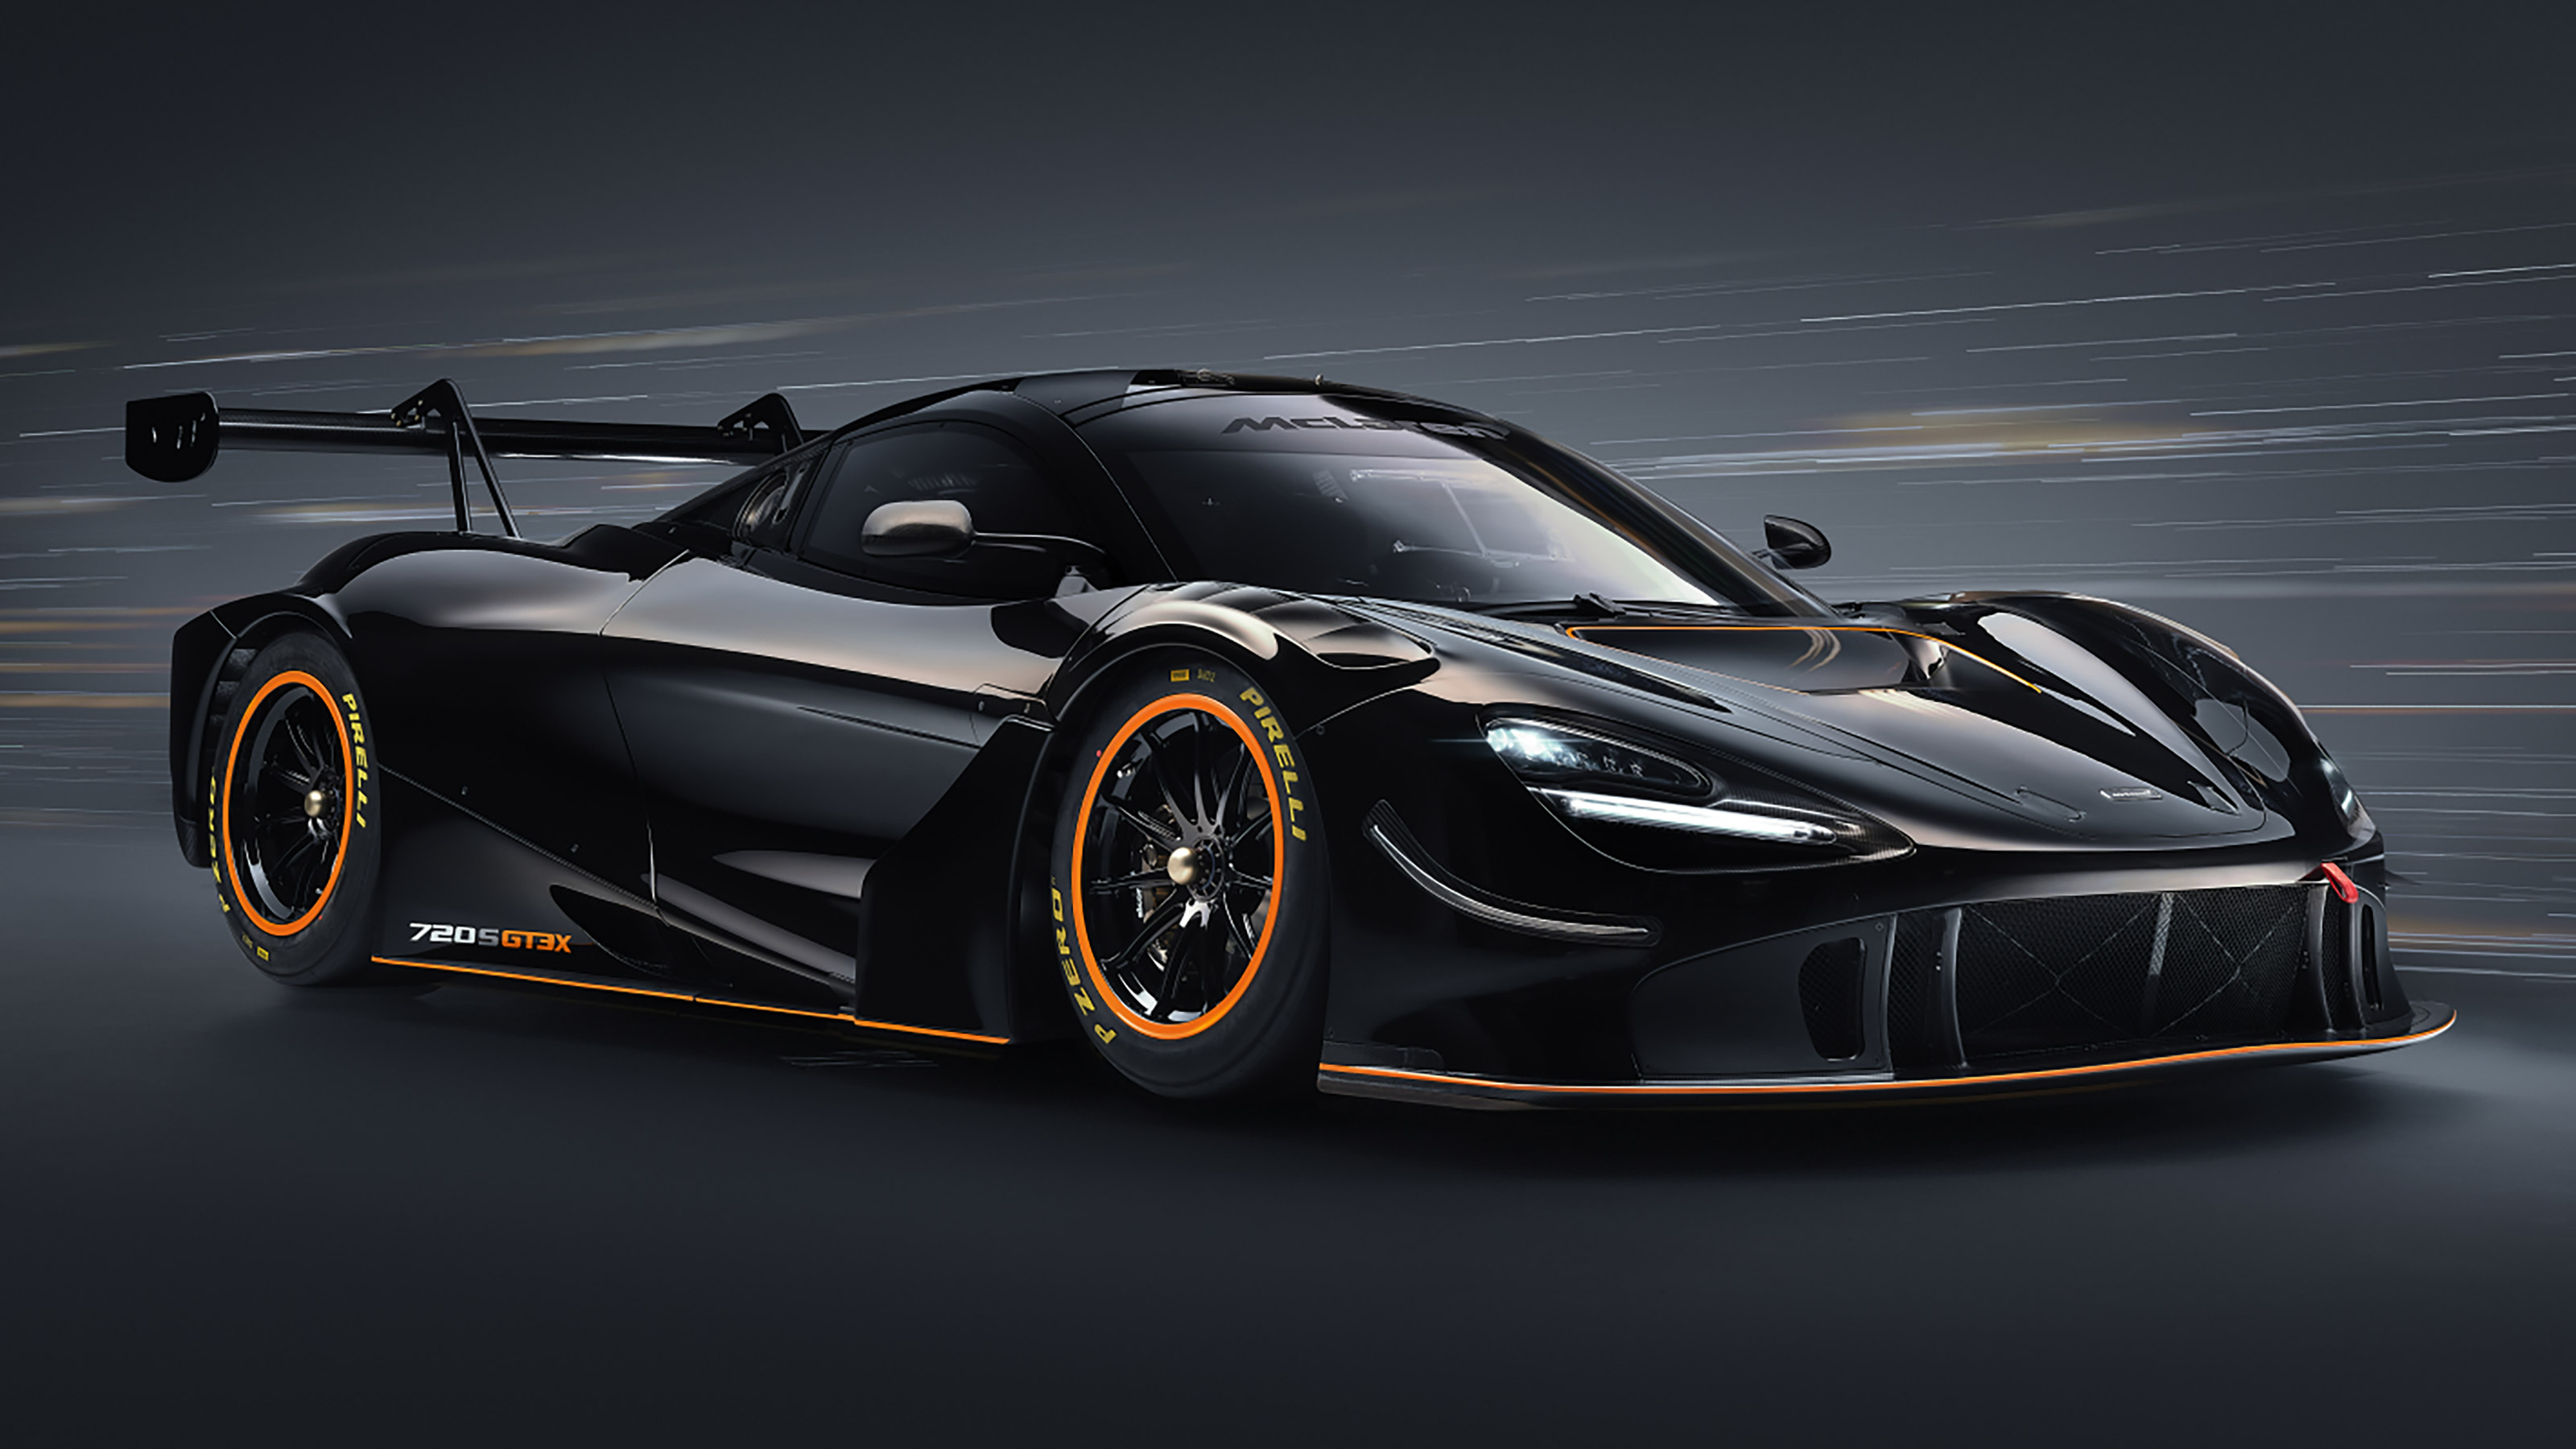 McLaren 720S GT3X launched as 710bhp track-only special